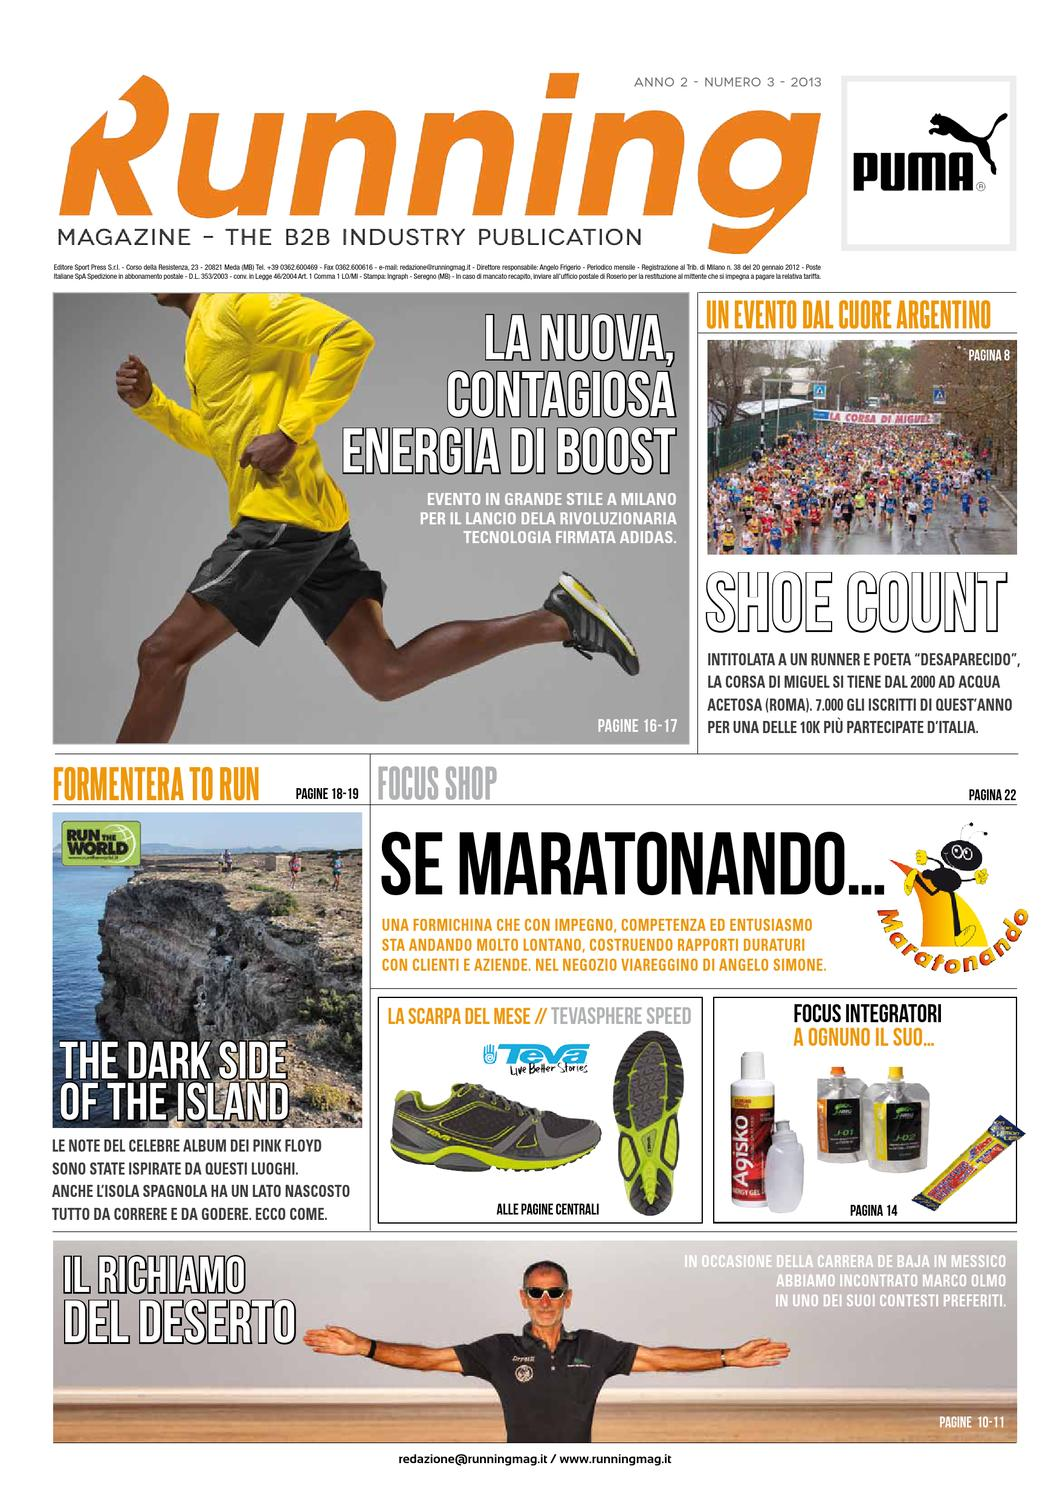 3 Sport Press Magazine 2013 Running Issuu By c3lK1F5TuJ